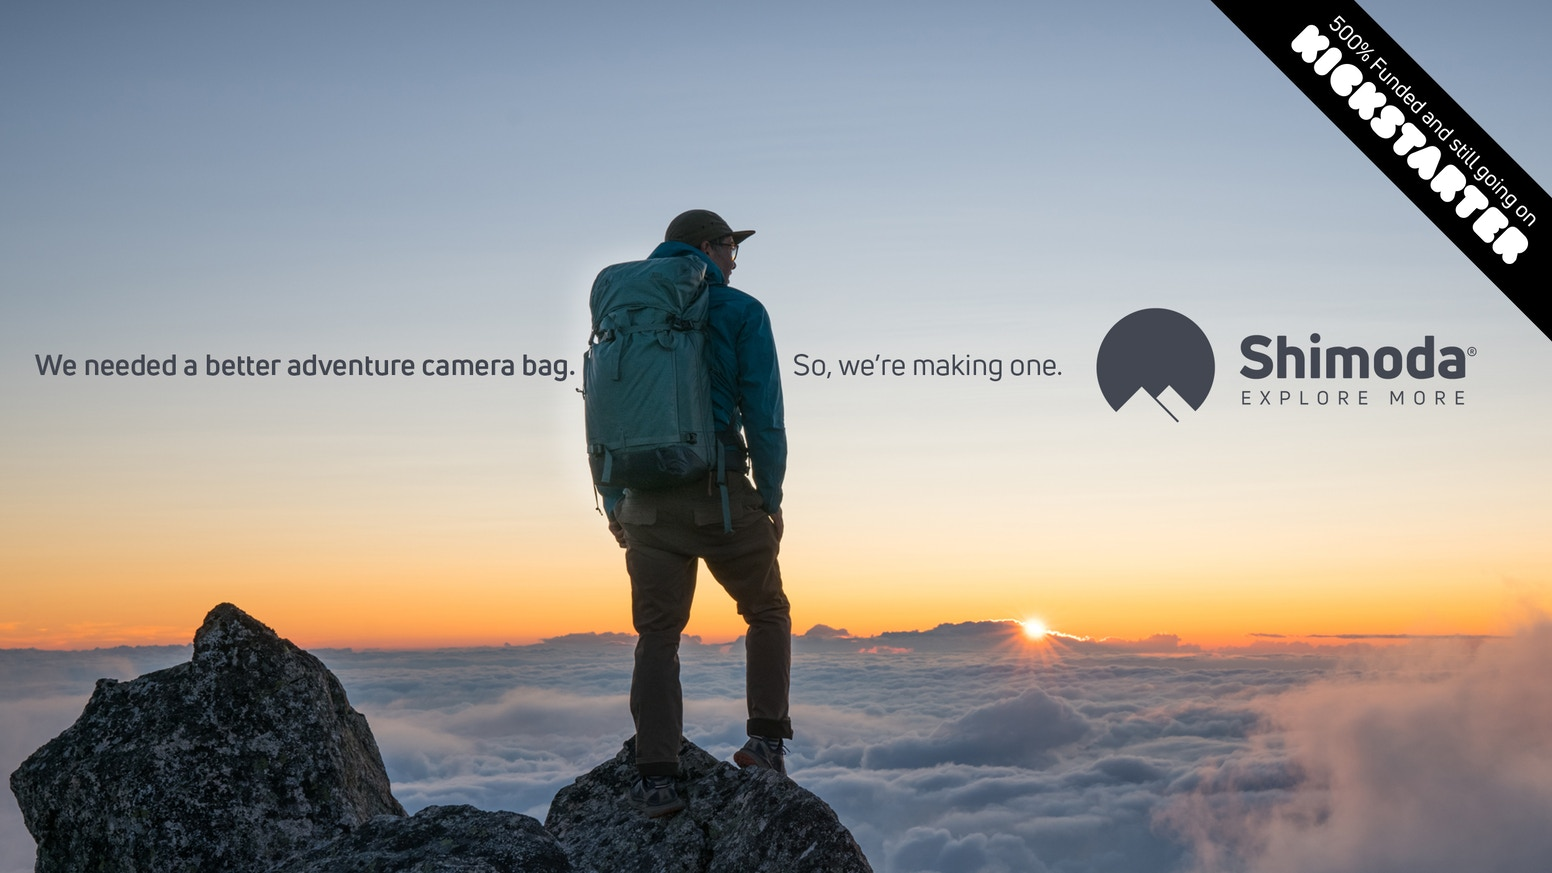 We are making camera bags for explorers, storytellers and creators. Our designs are driven by adventure.